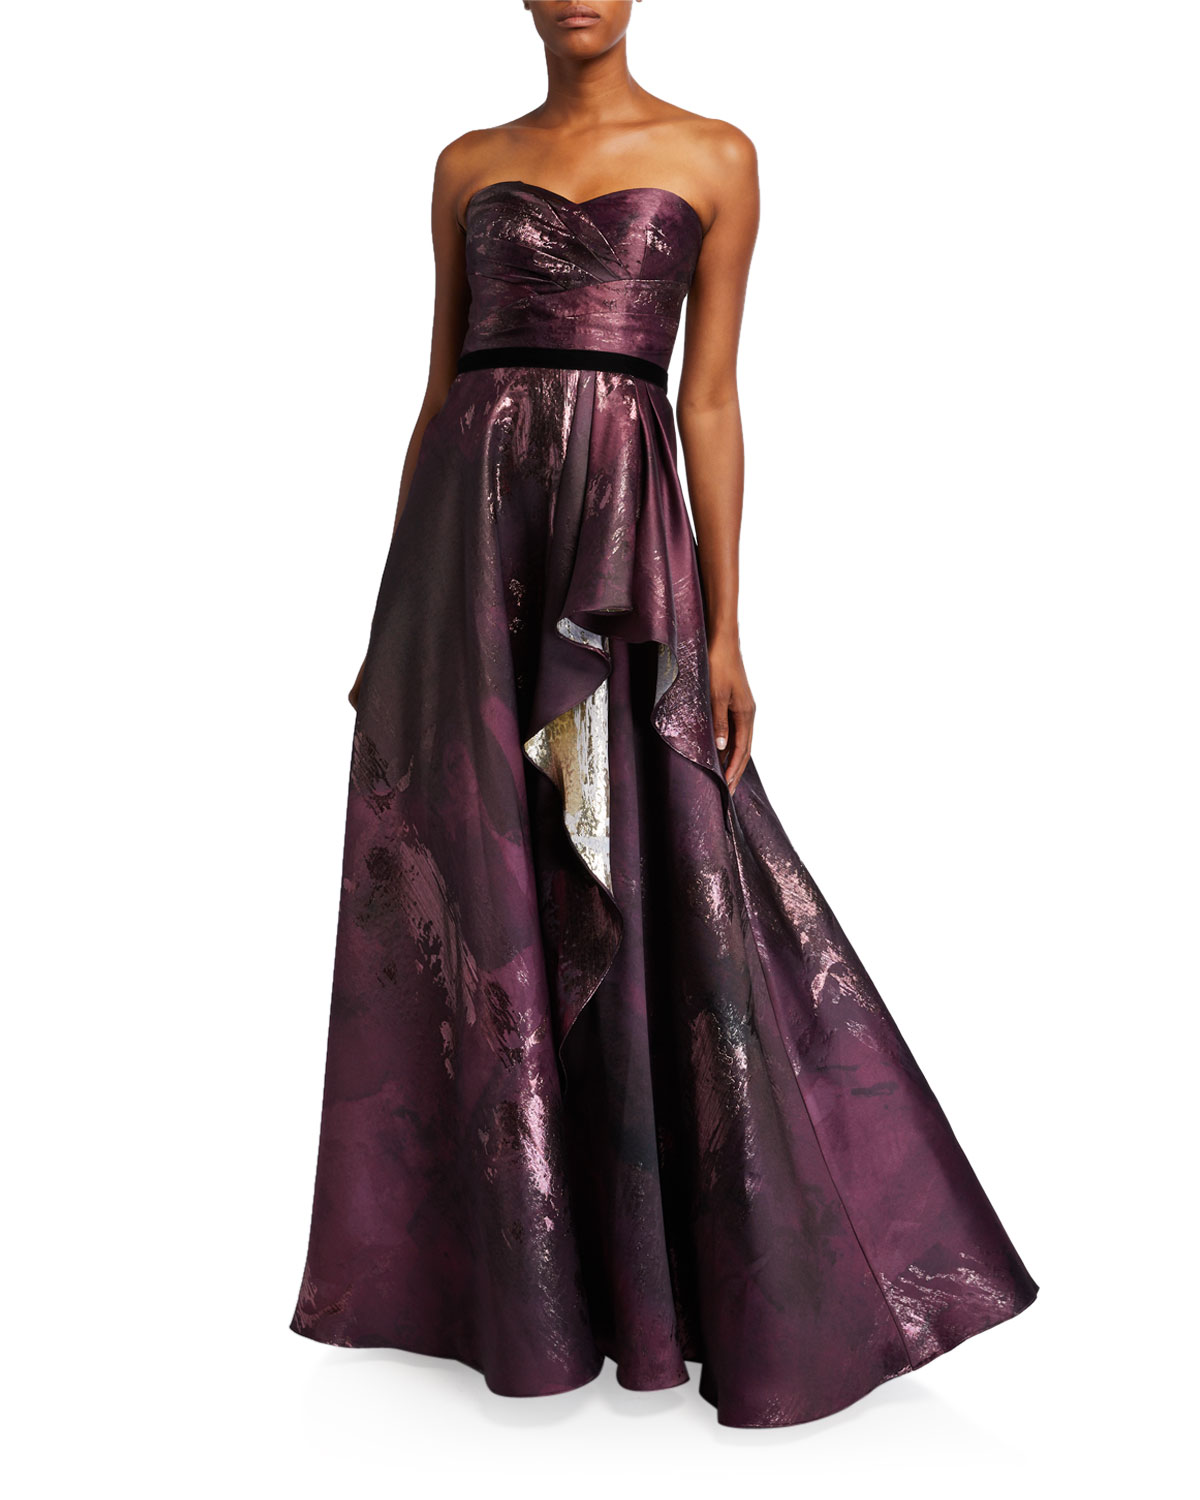 Marchesa Notte Dresses STRAPLESS DRAPED METALLIC JACQUARD GOWN W/ VELVET RIBBON TRIM